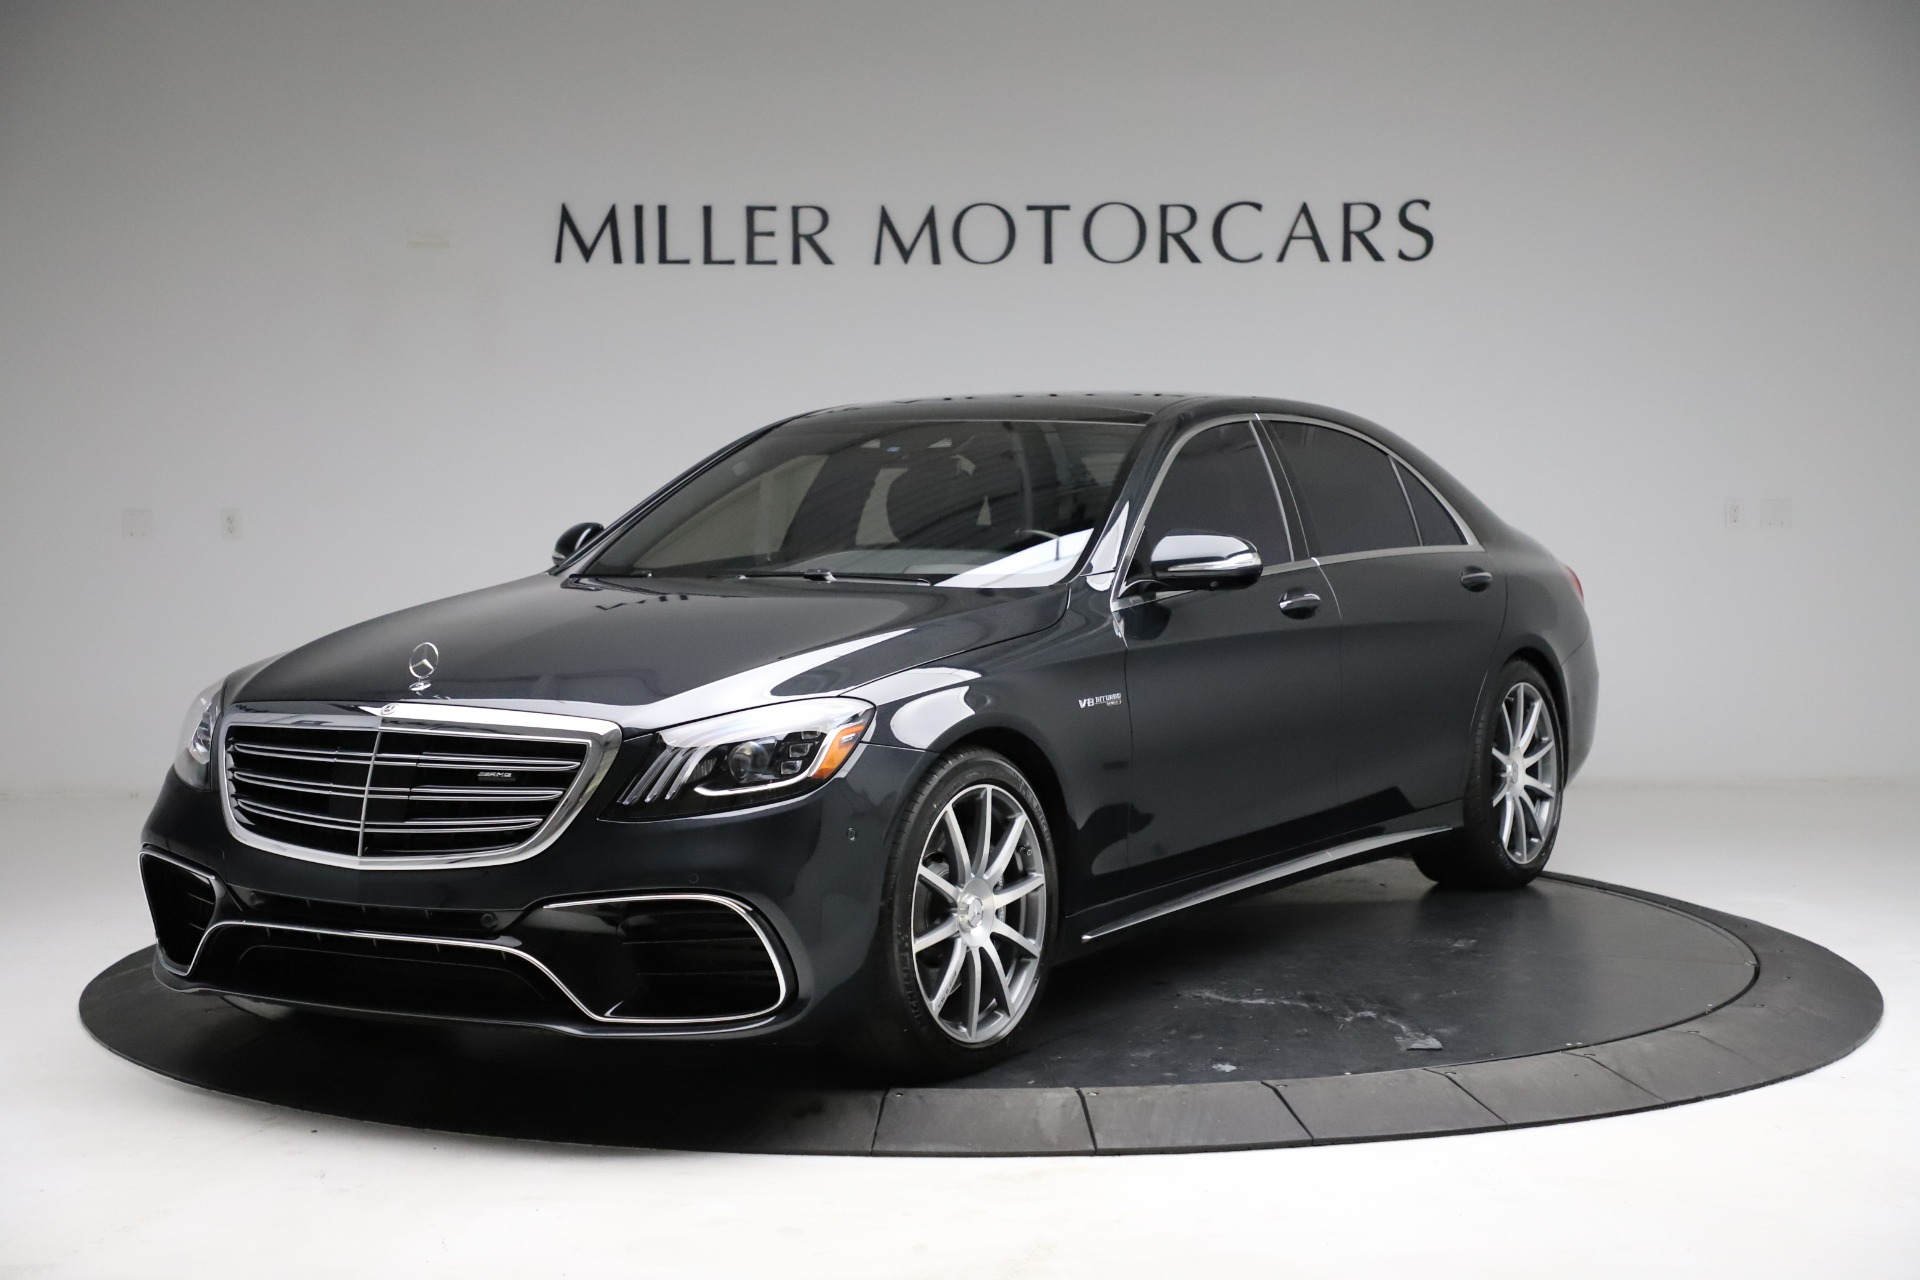 Used 2019 Mercedes-Benz S-Class AMG S 63 for sale $122,900 at Aston Martin of Greenwich in Greenwich CT 06830 1